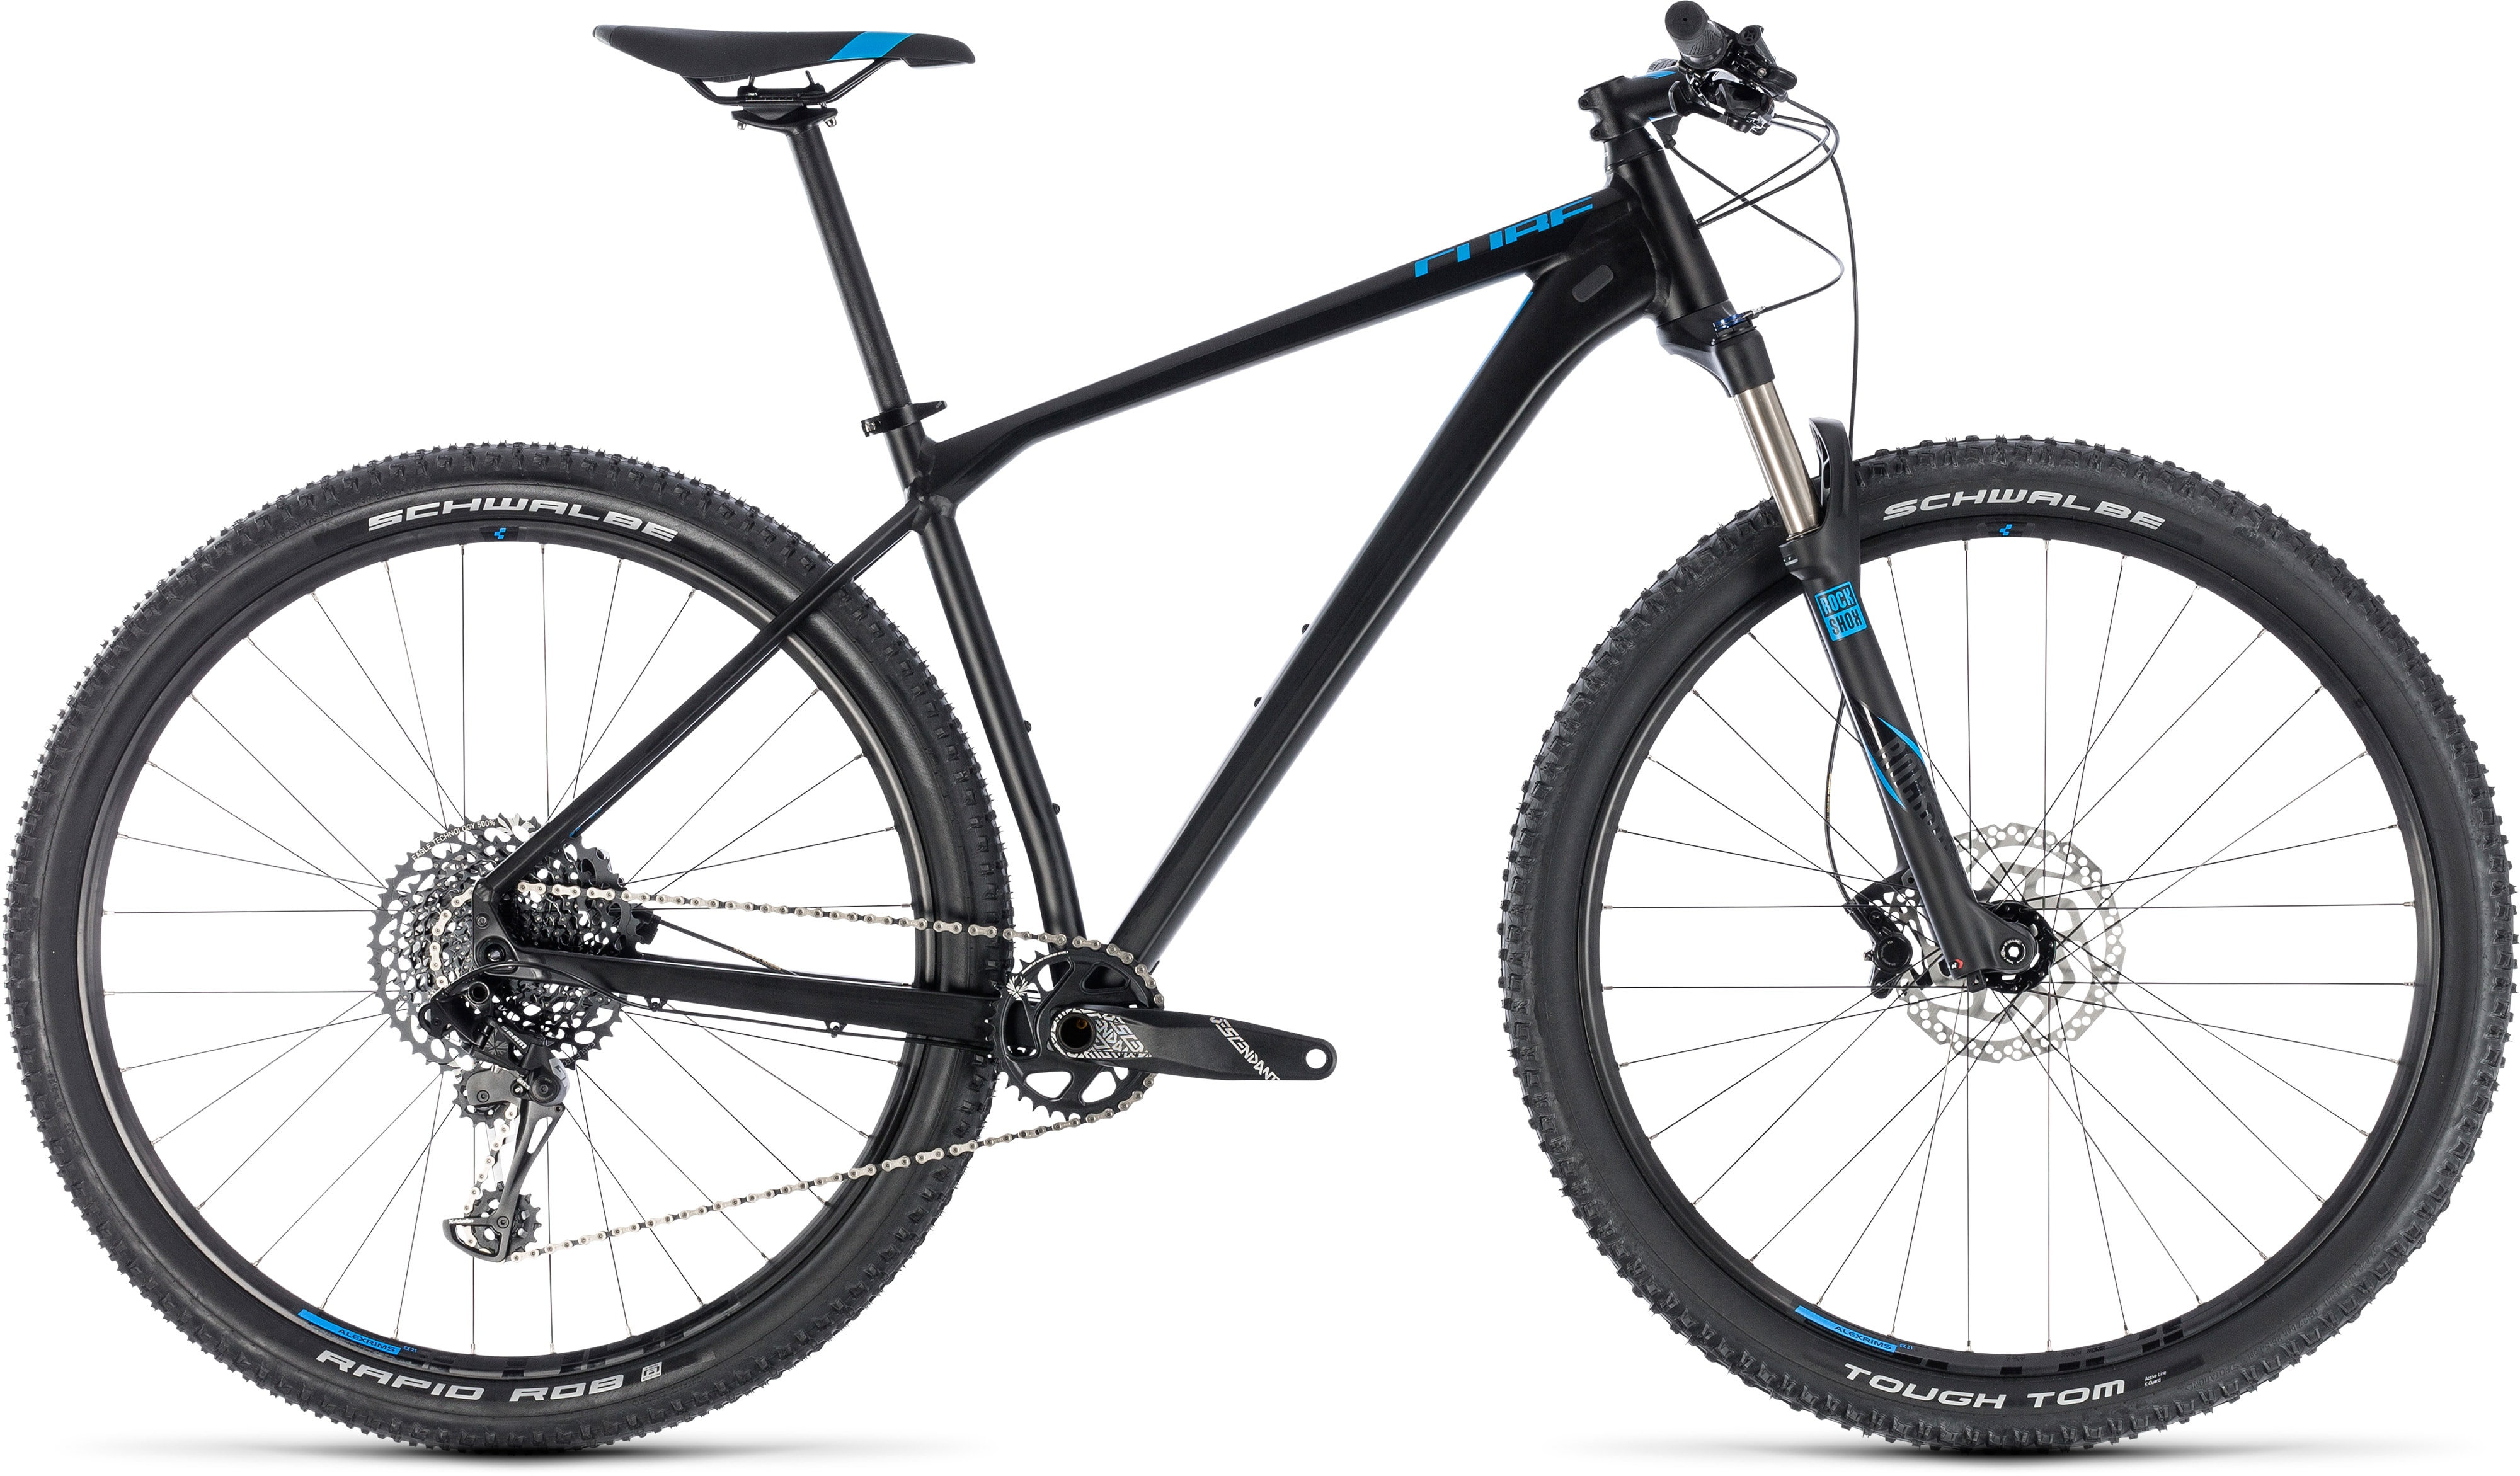 9489601457e Cube Reaction Race Hardtail Mountain Bike 2018 Black/Blue £1,099.99